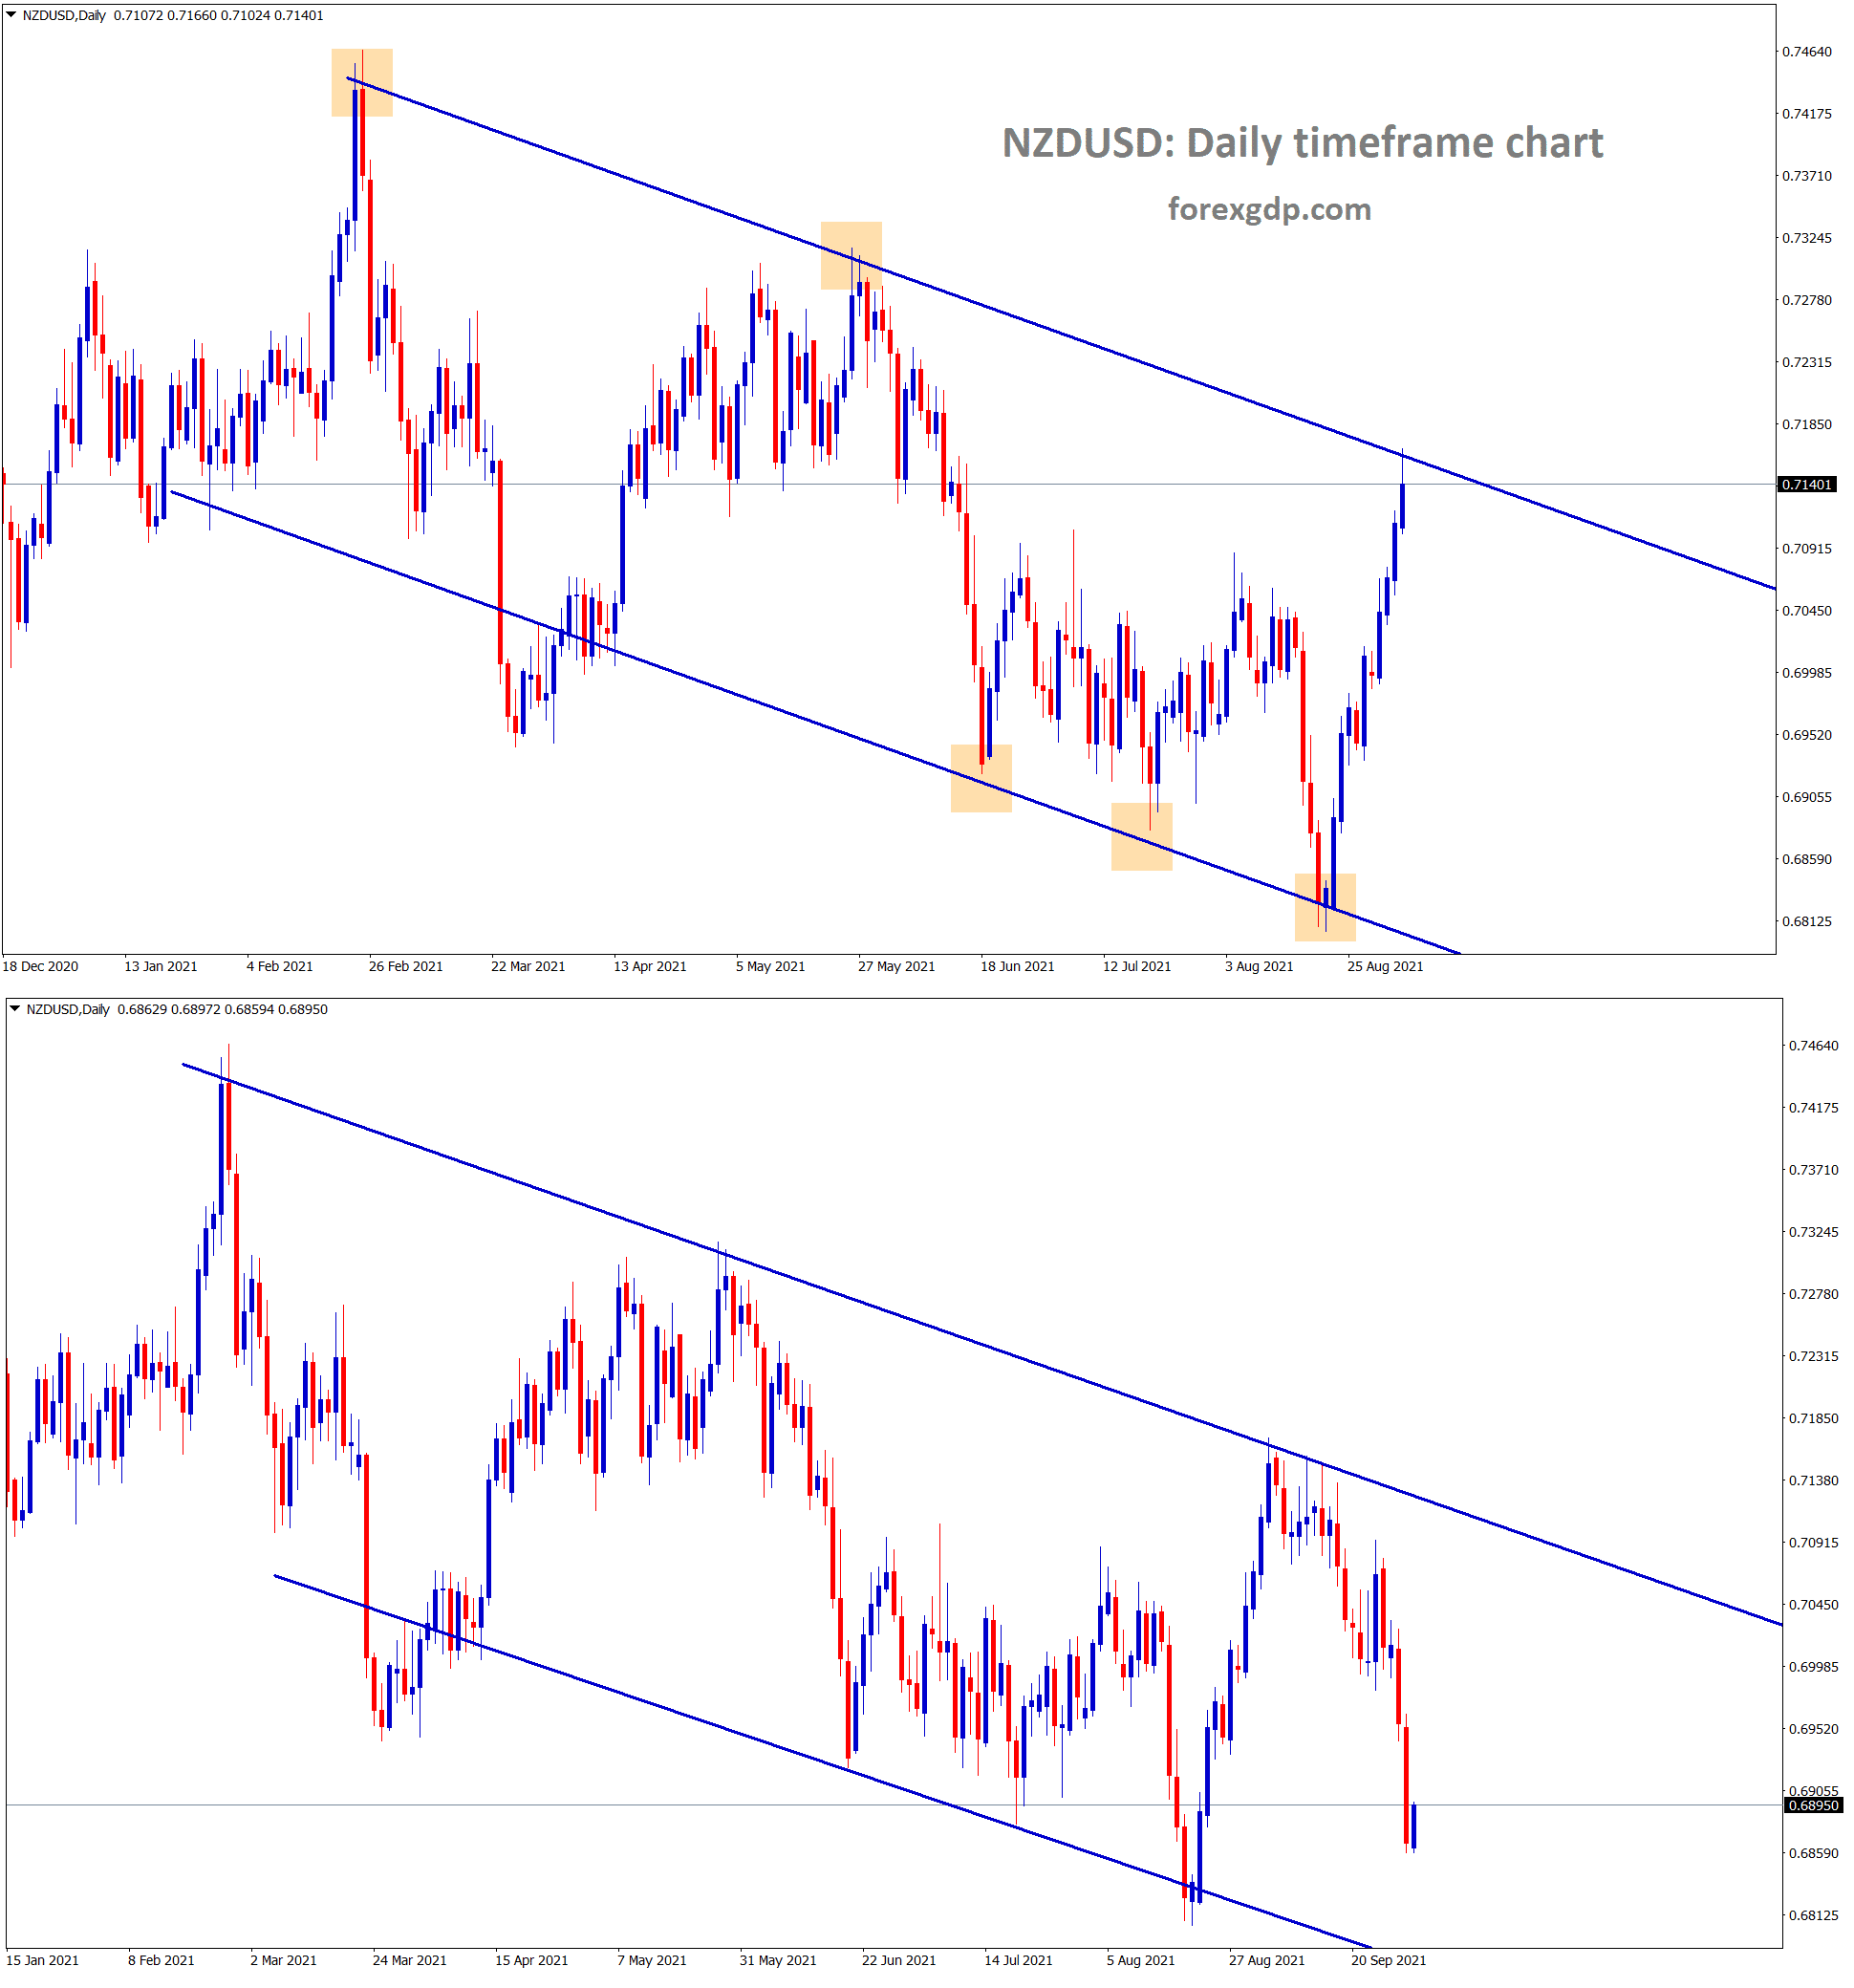 NZDUSD fell down more in this week from the lower high area of the descending channel